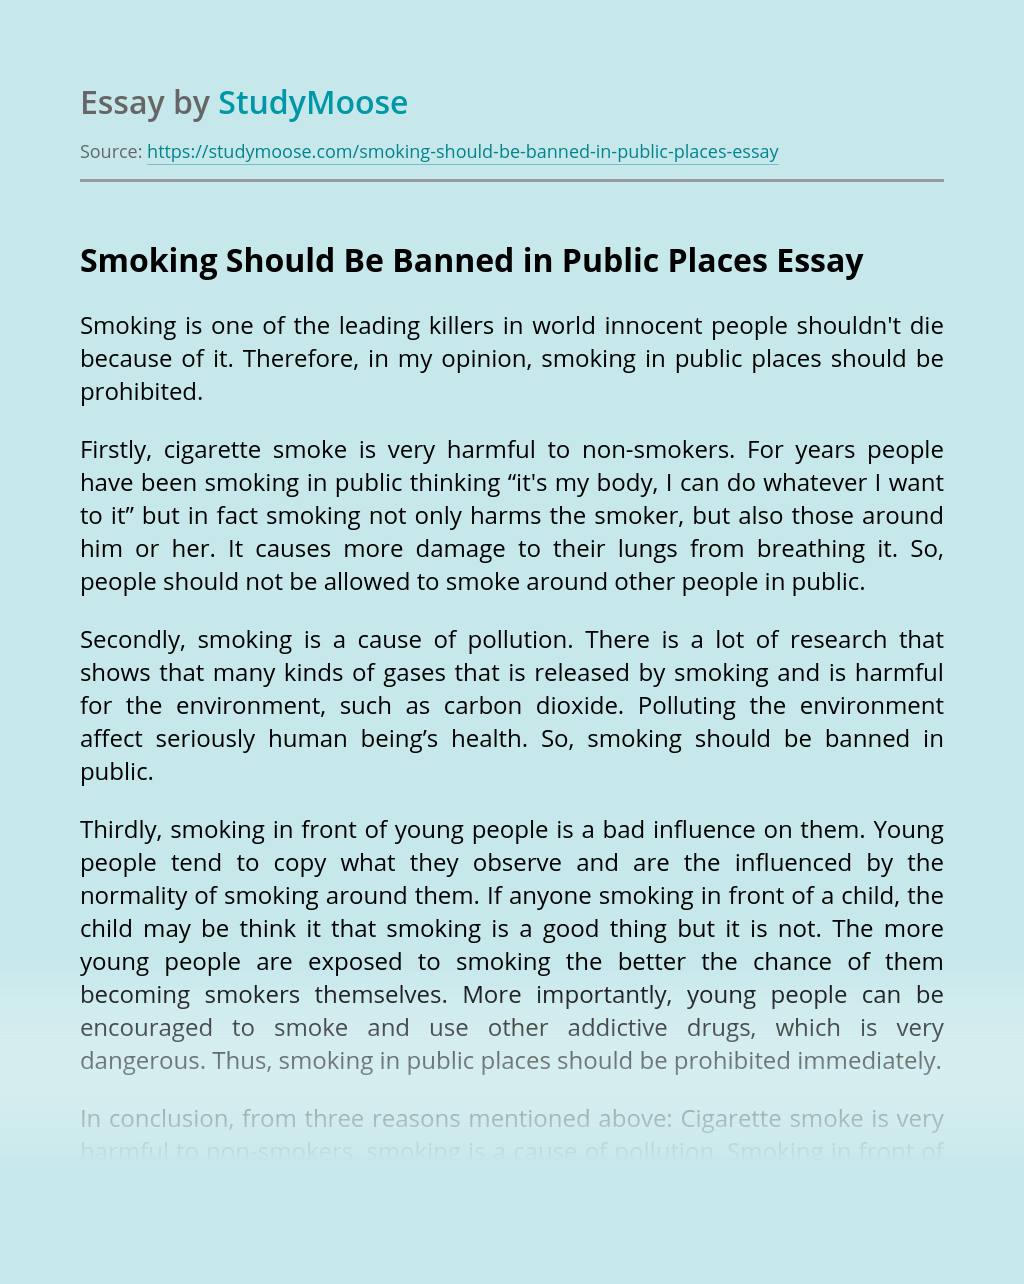 Should smoking be banned essay